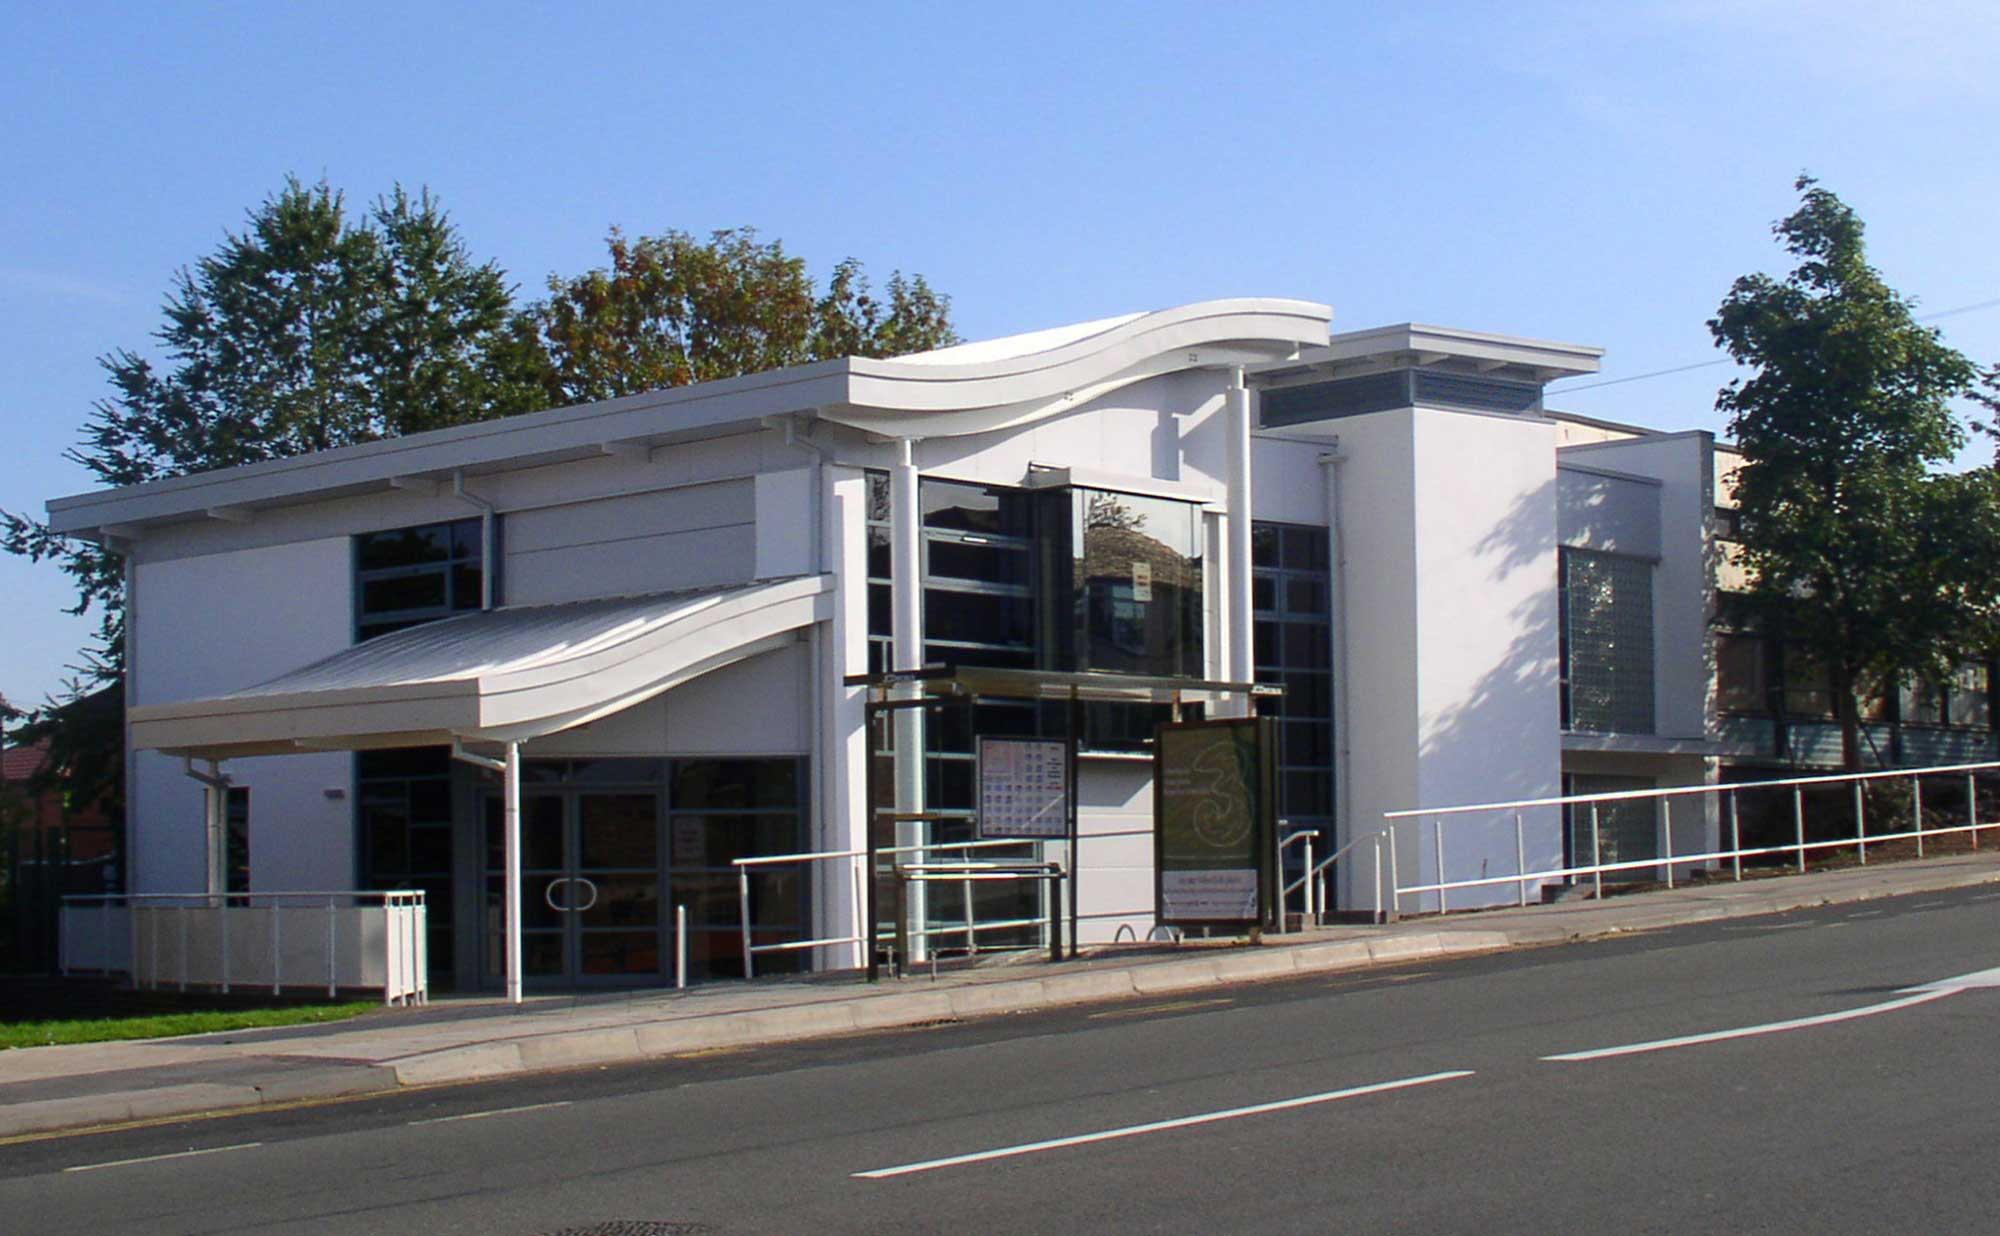 Meir Community education centre and youth cafe